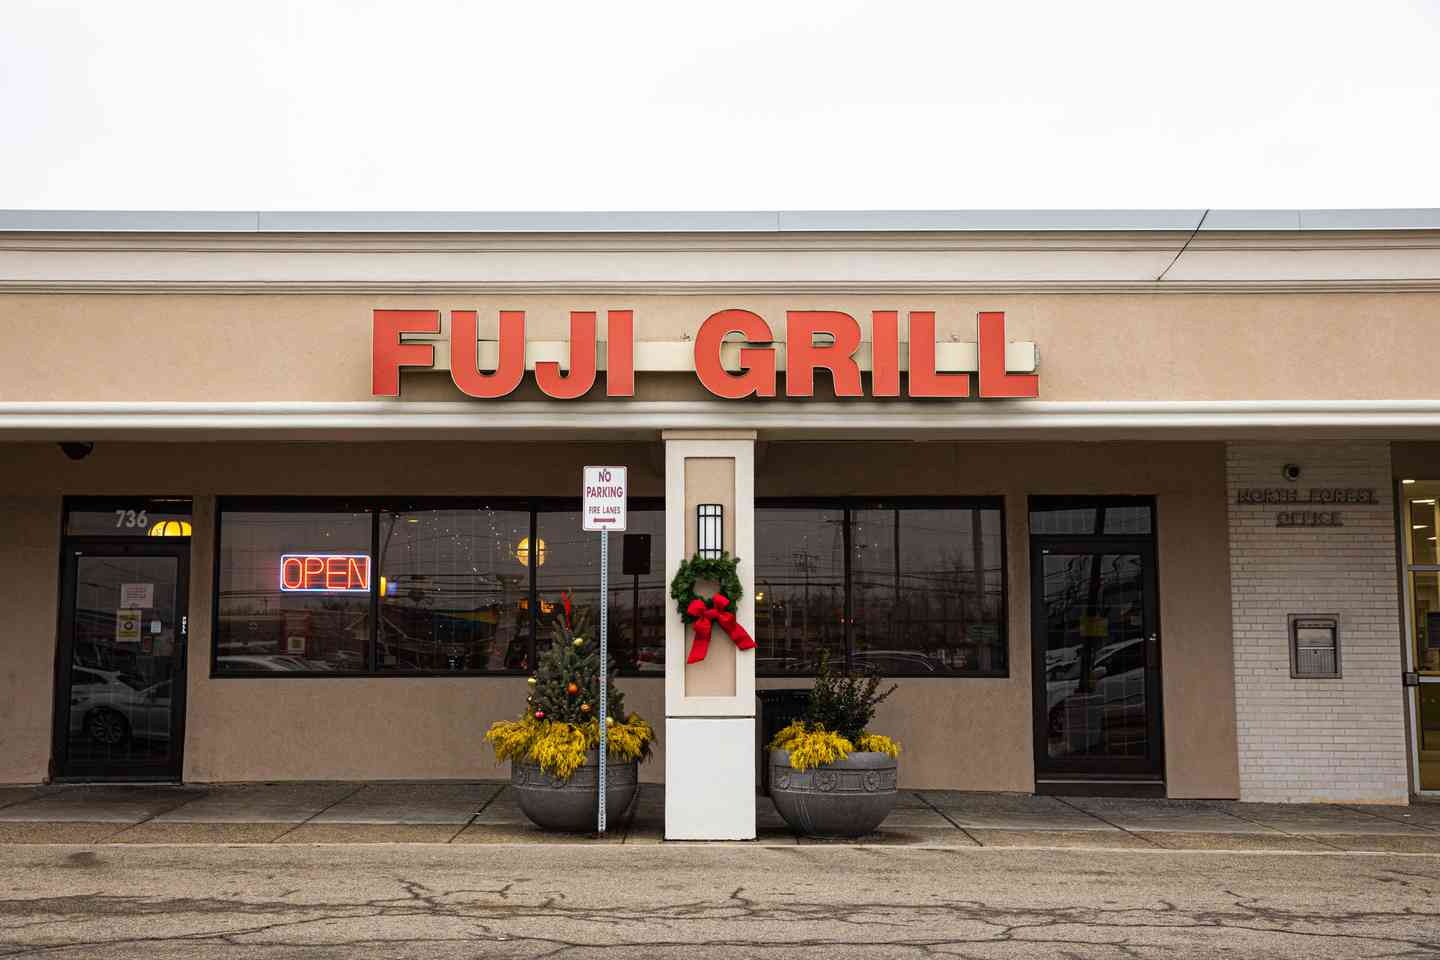 Exterior of Fuji Grill on Maple Rd